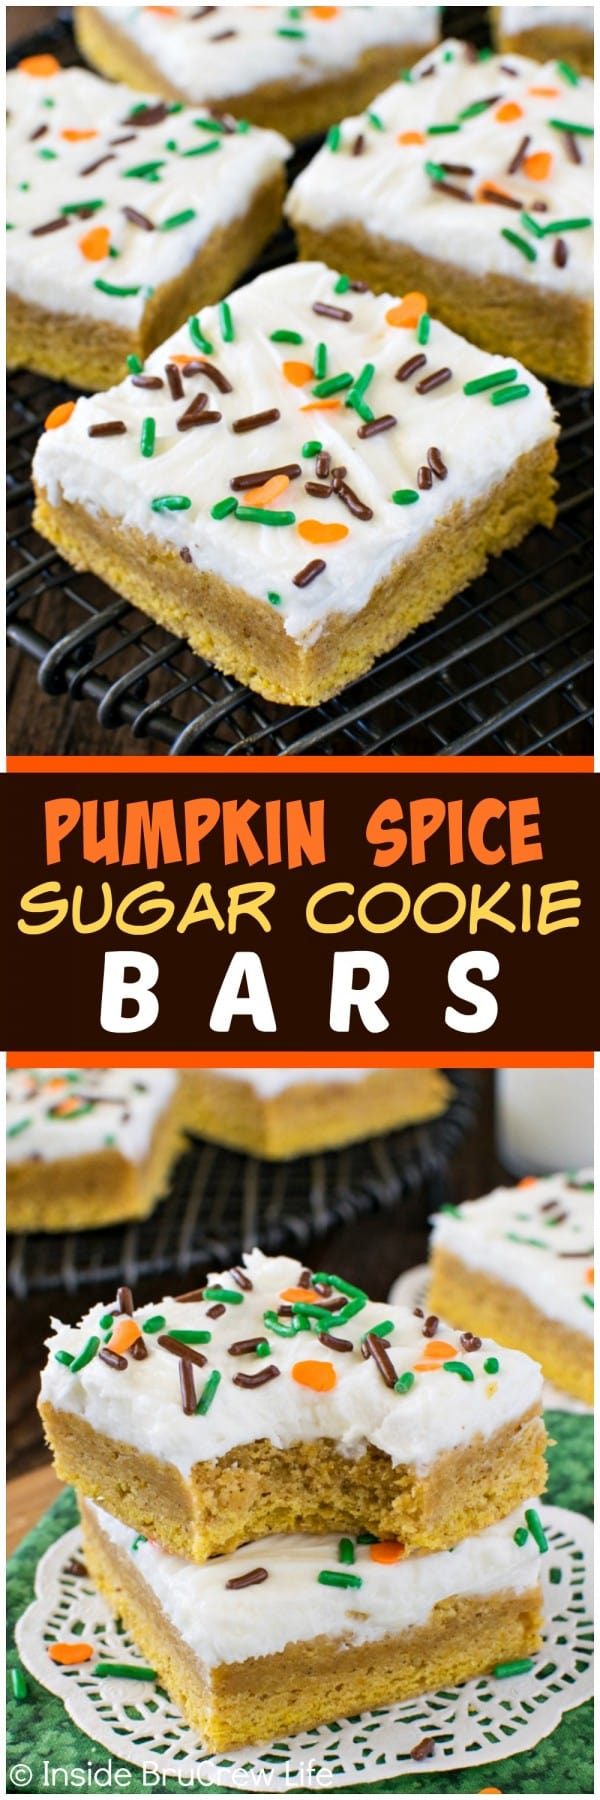 Pumpkin Spice Sugar Cookie Bars - these easy bar cookies have a sweet ...